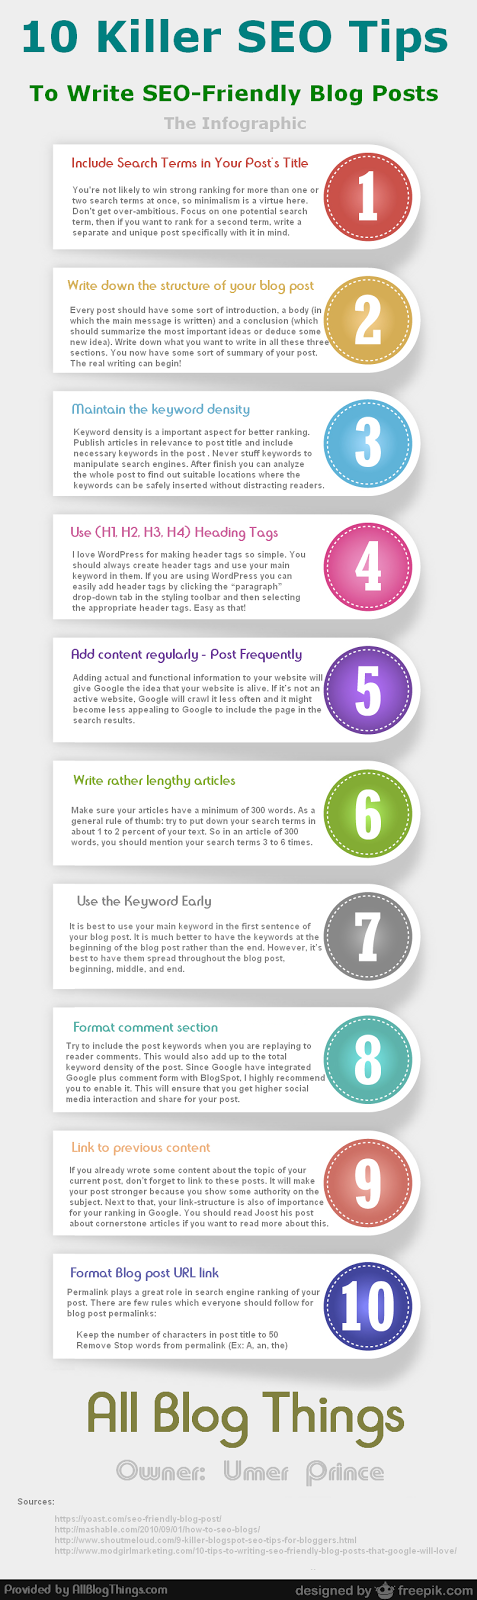 Infographic: 10 Killer SEO Tips To Write SEO-Friendly Blog Posts